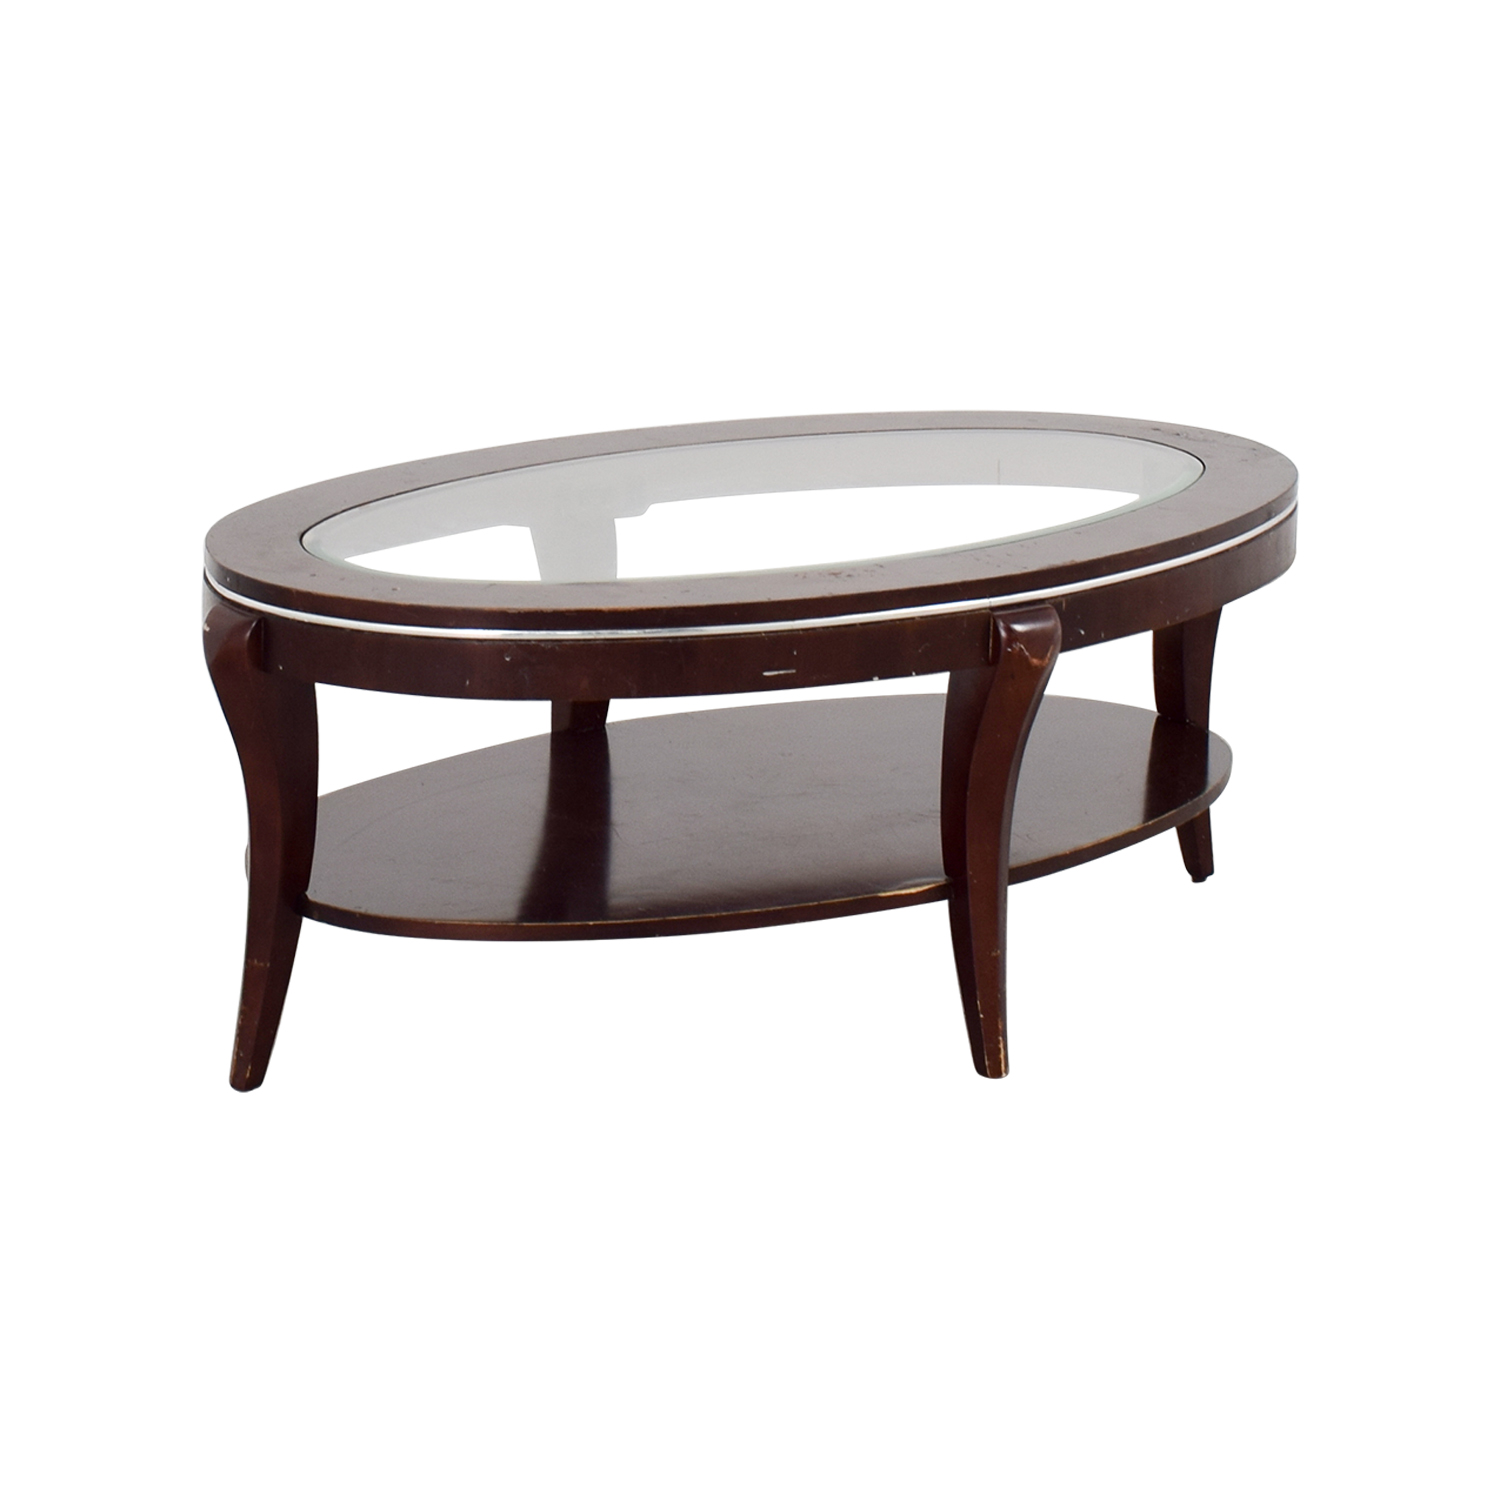 89 off wood and glass oval coffee table tables for Oval glass coffee table